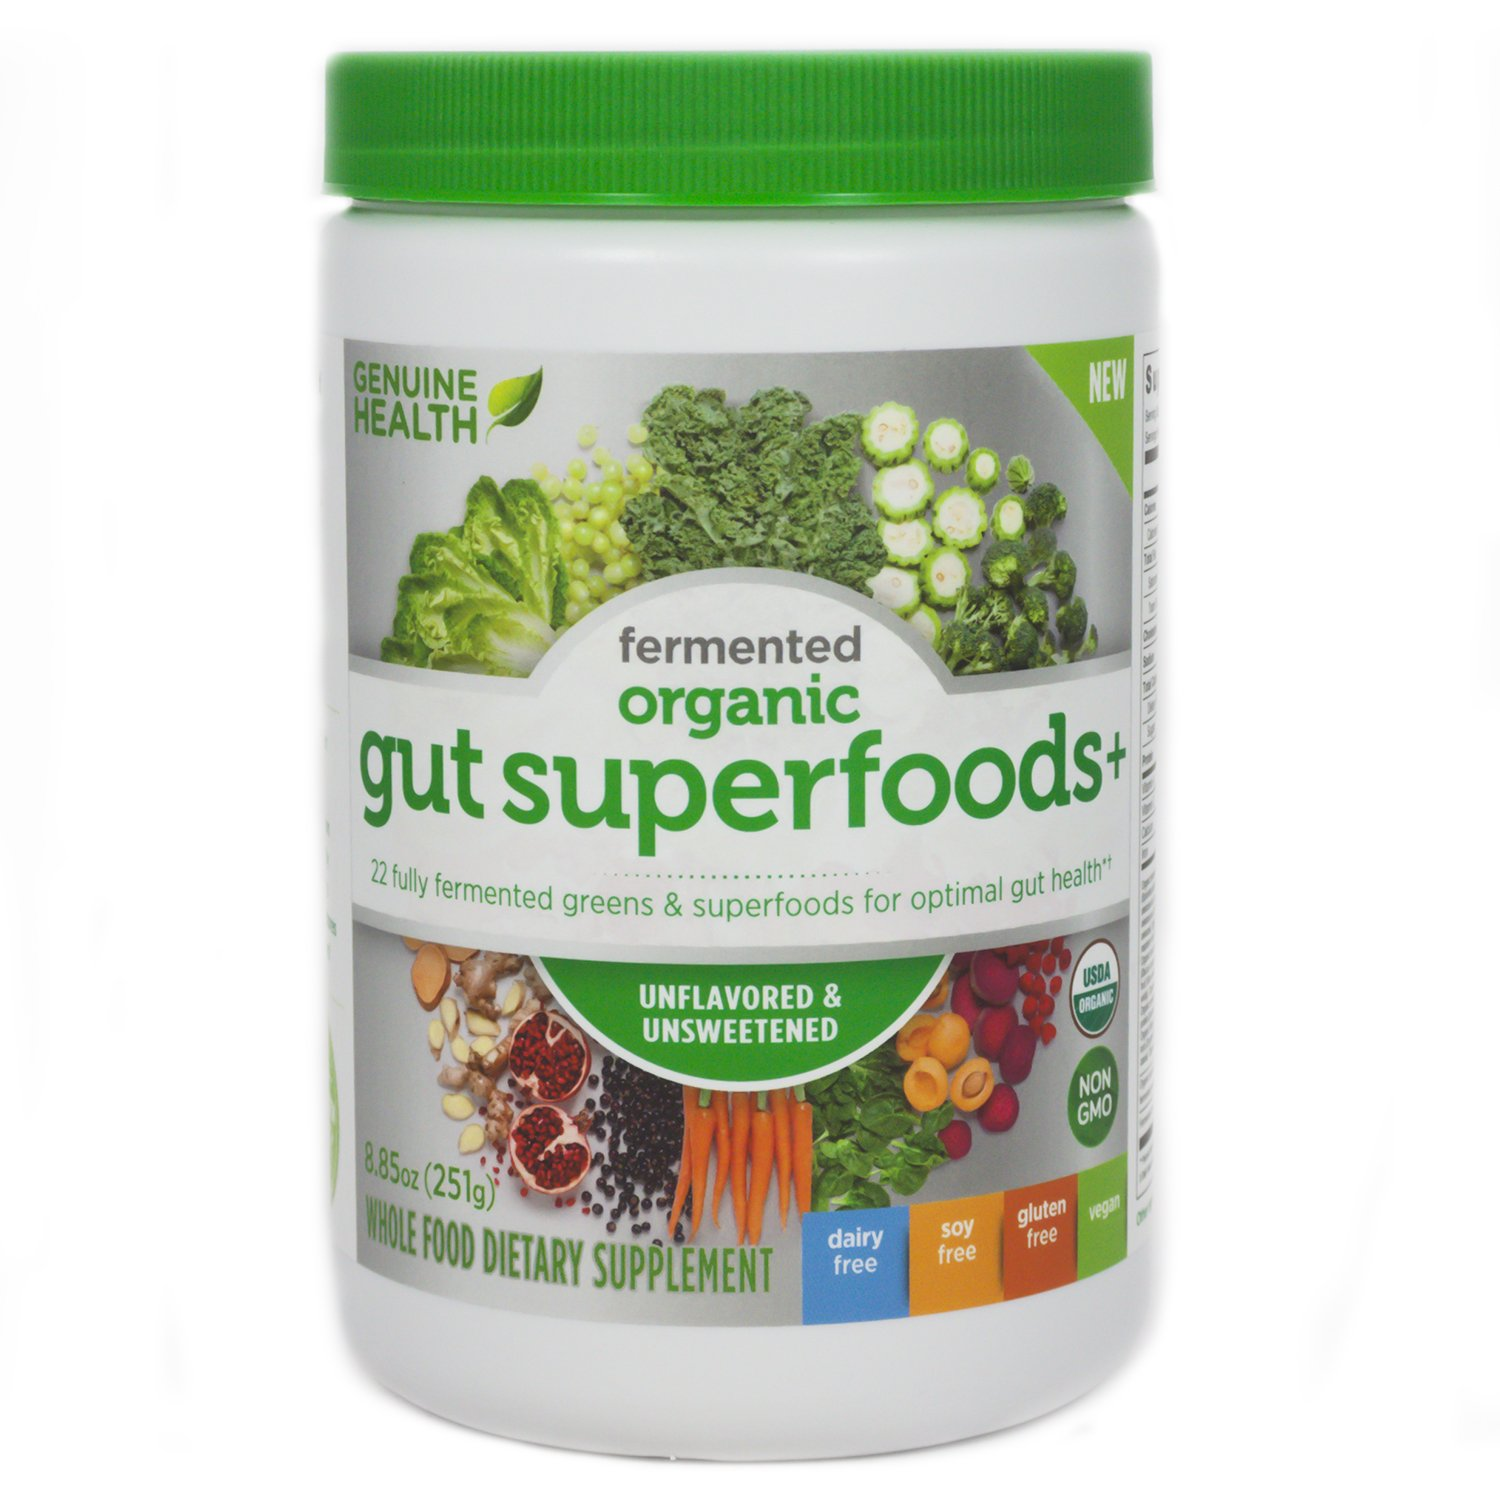 Genuine Health Fermented Organic Gut Superfoods+ (Unflavored)